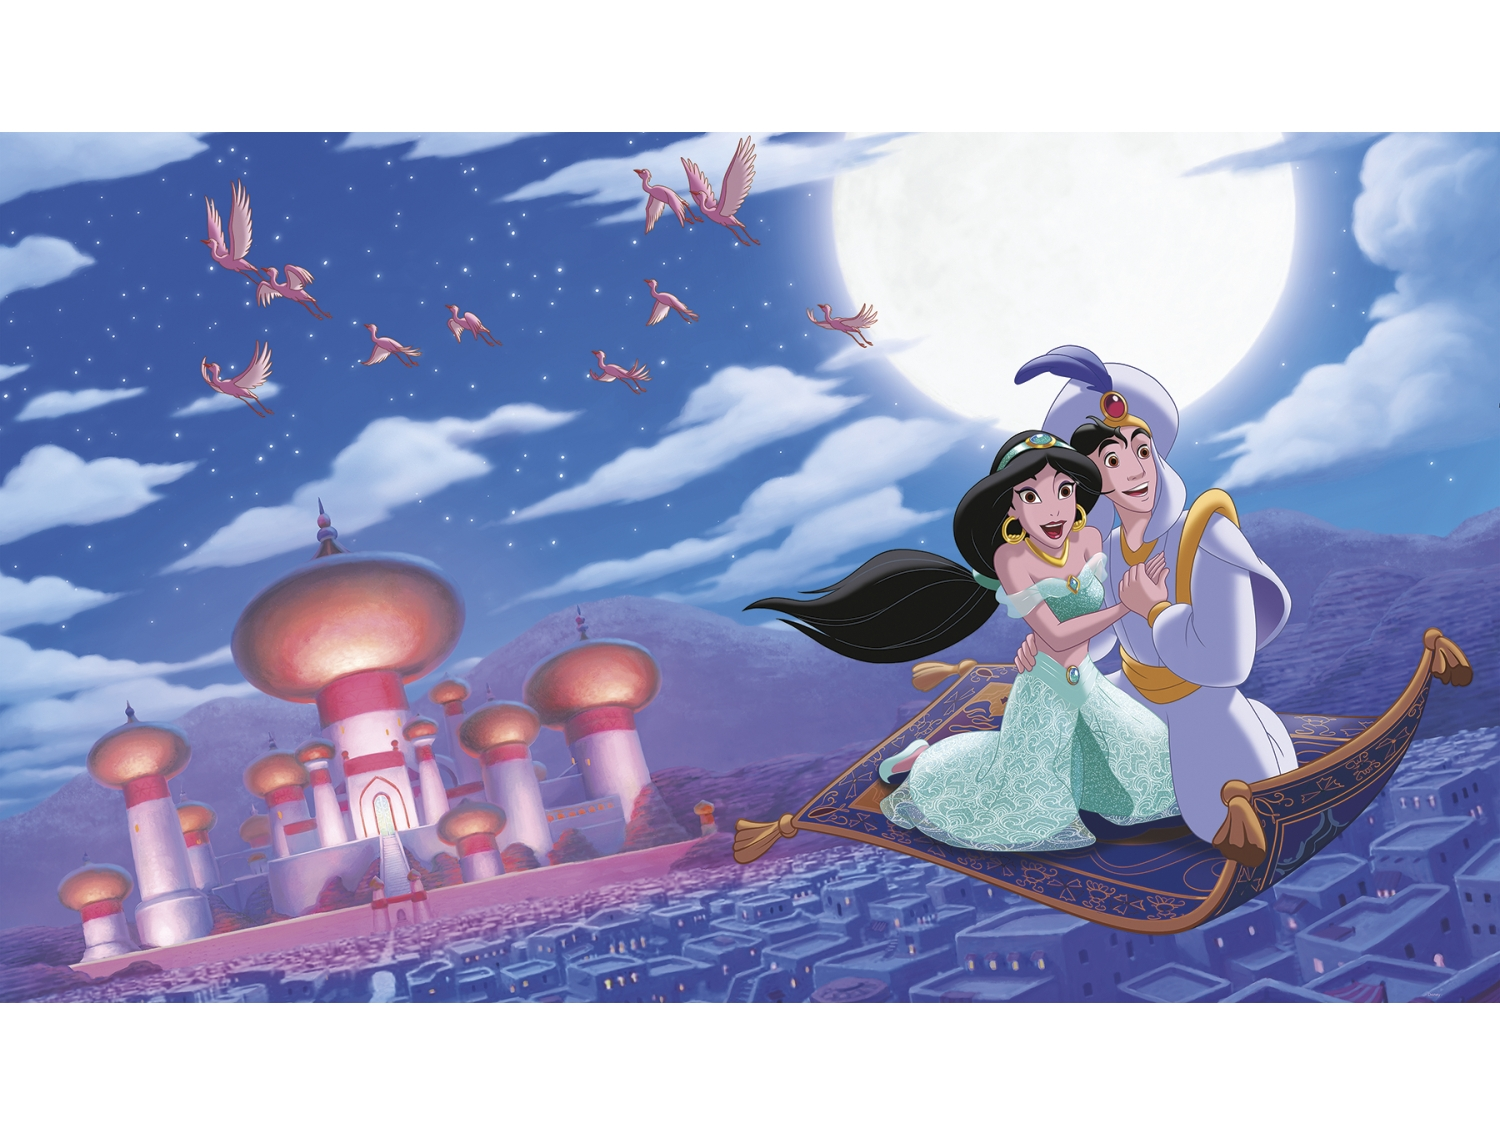 Jl1371m Aladdin A Whole New World Prepasted Xl Mural